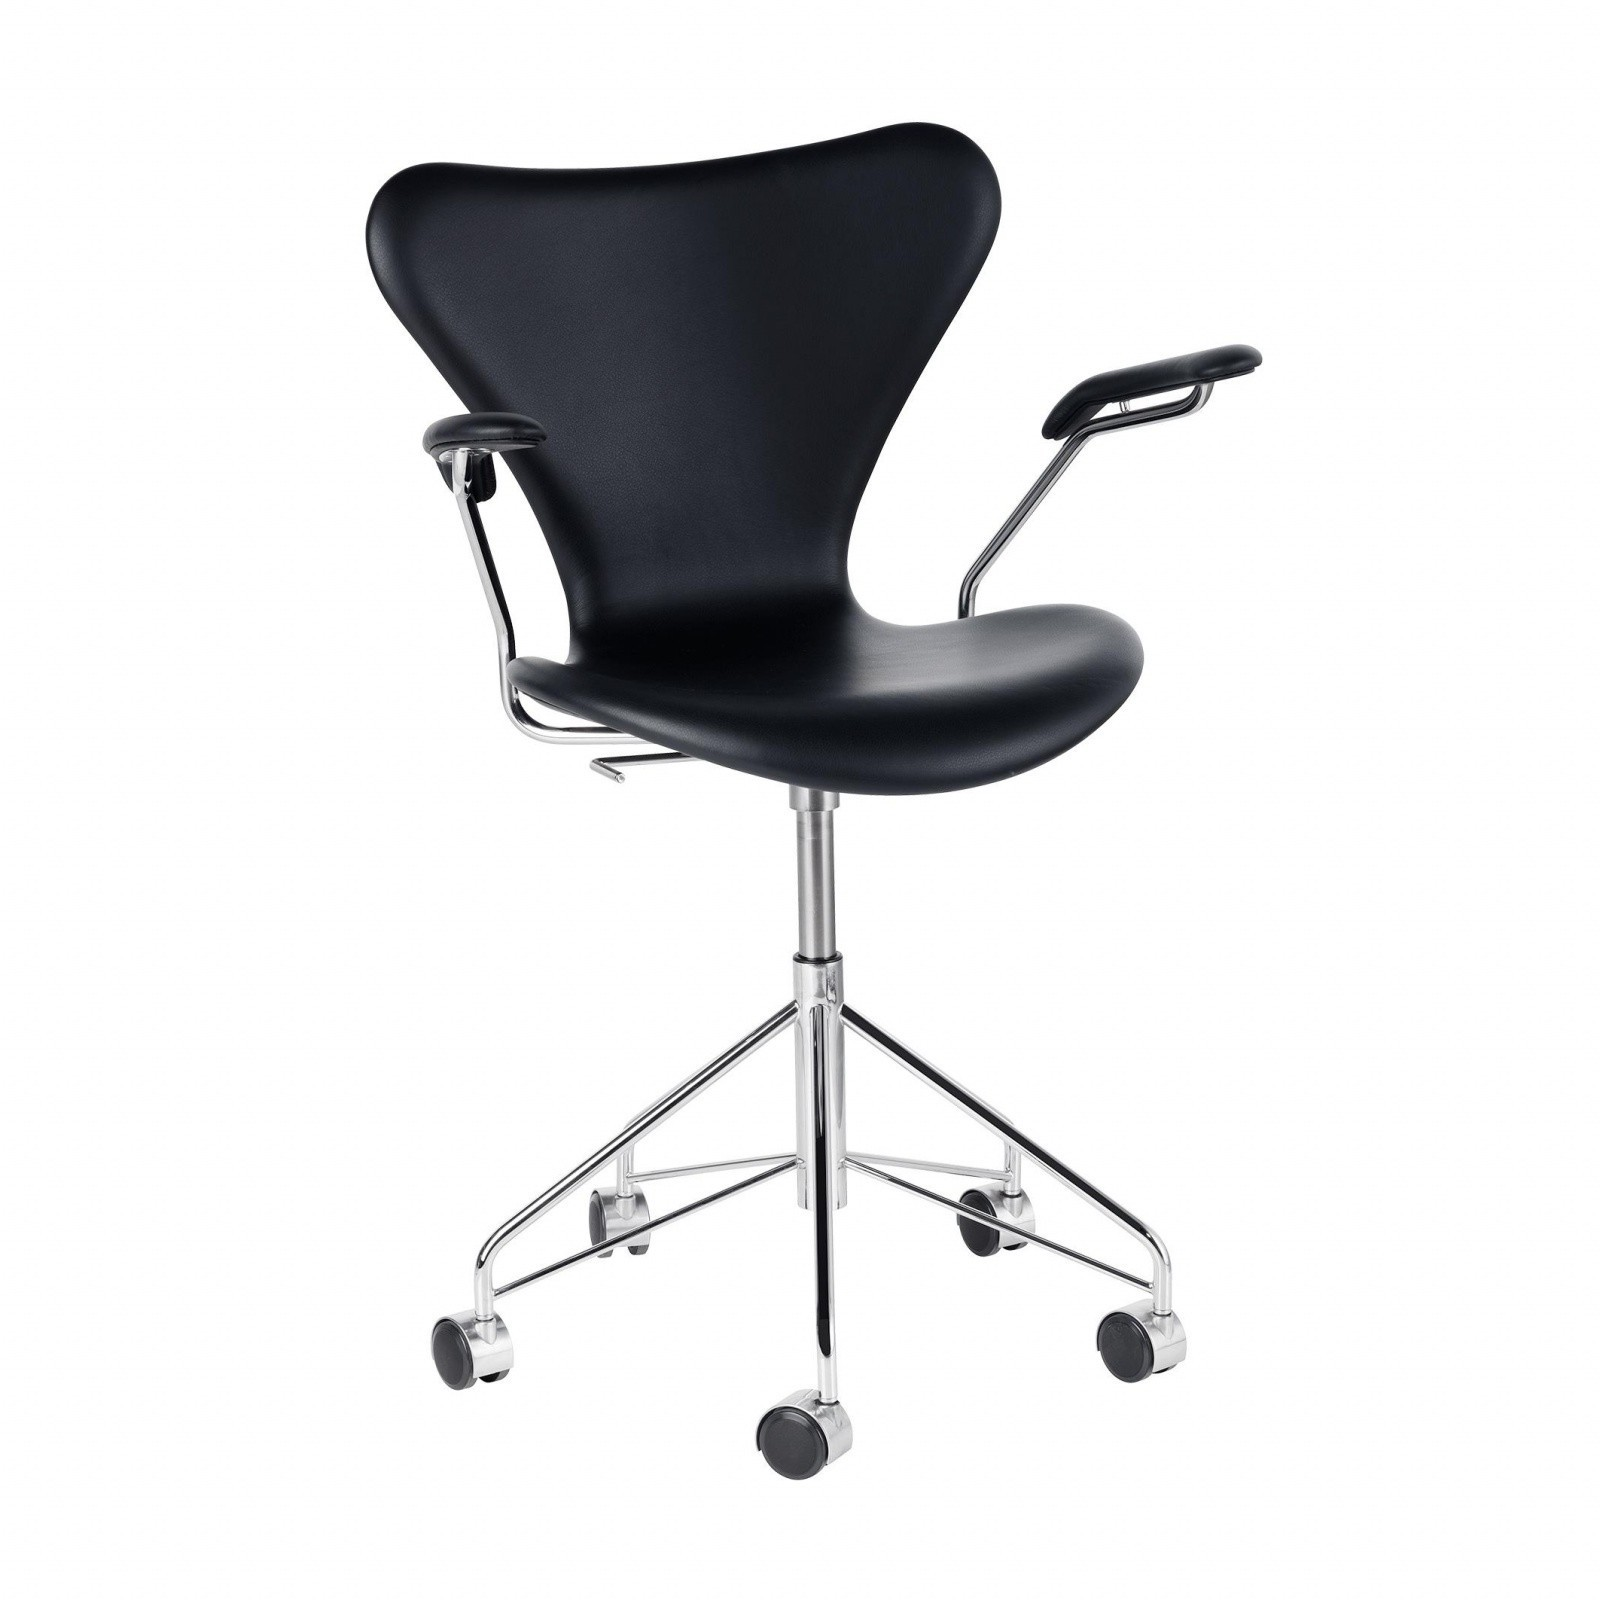 Fritz Hansen Chairs Serie 7 Swivel Armrest Chair Office Chair